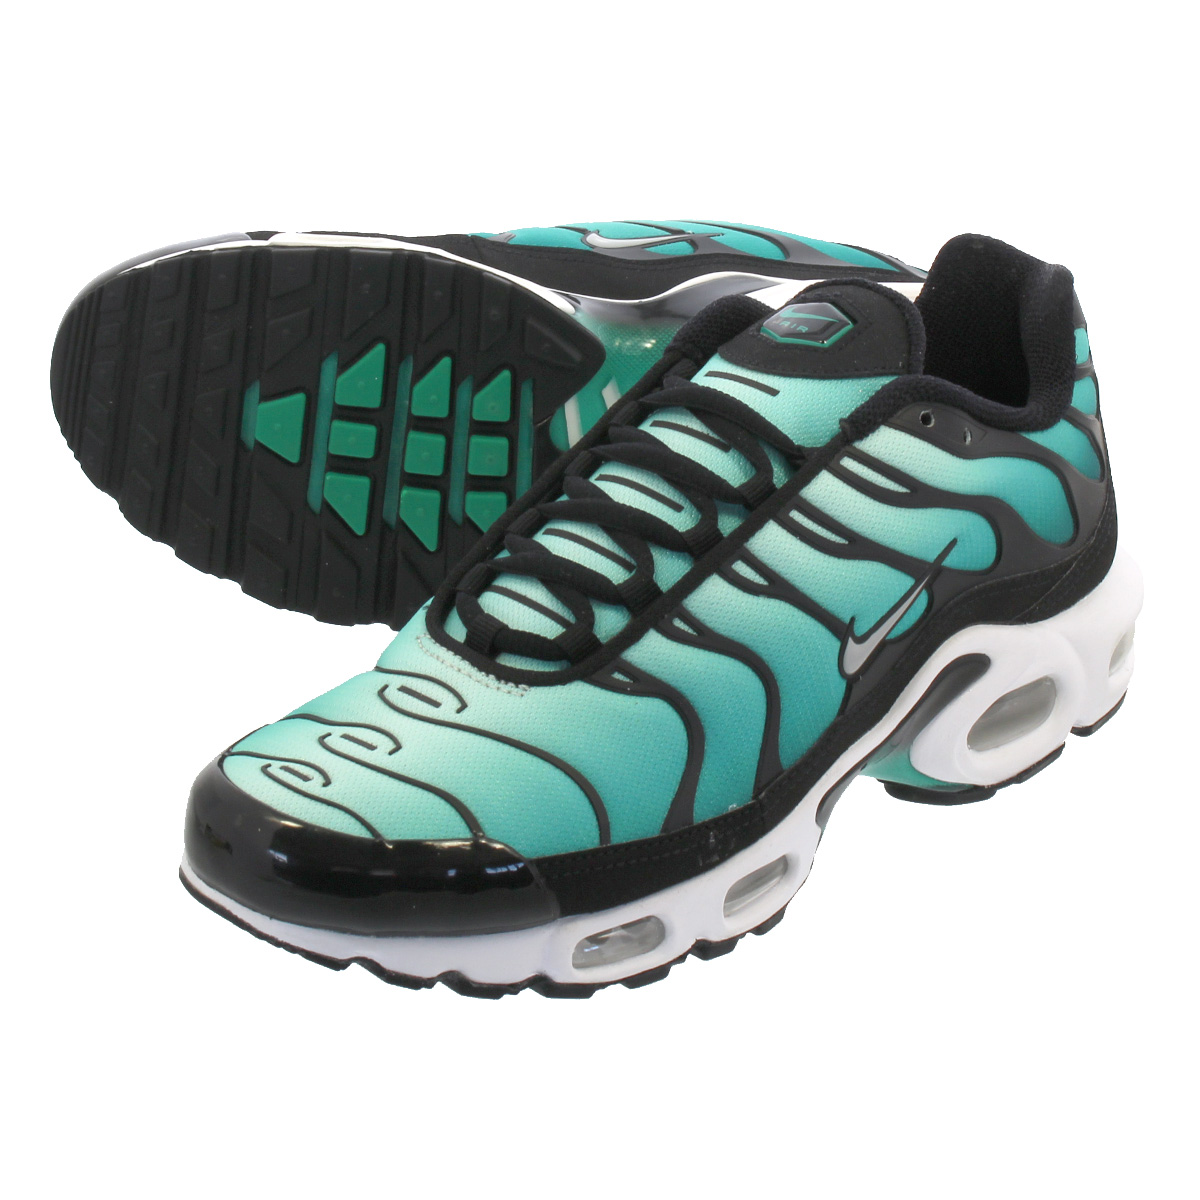 finest selection 2de13 a0416 NIKE WMNS AIR MAX PLUS SE Nike women Air Max plus SE BLACK/METALLIC  PLATINUM/CLEAR EMERALD 862,201-008